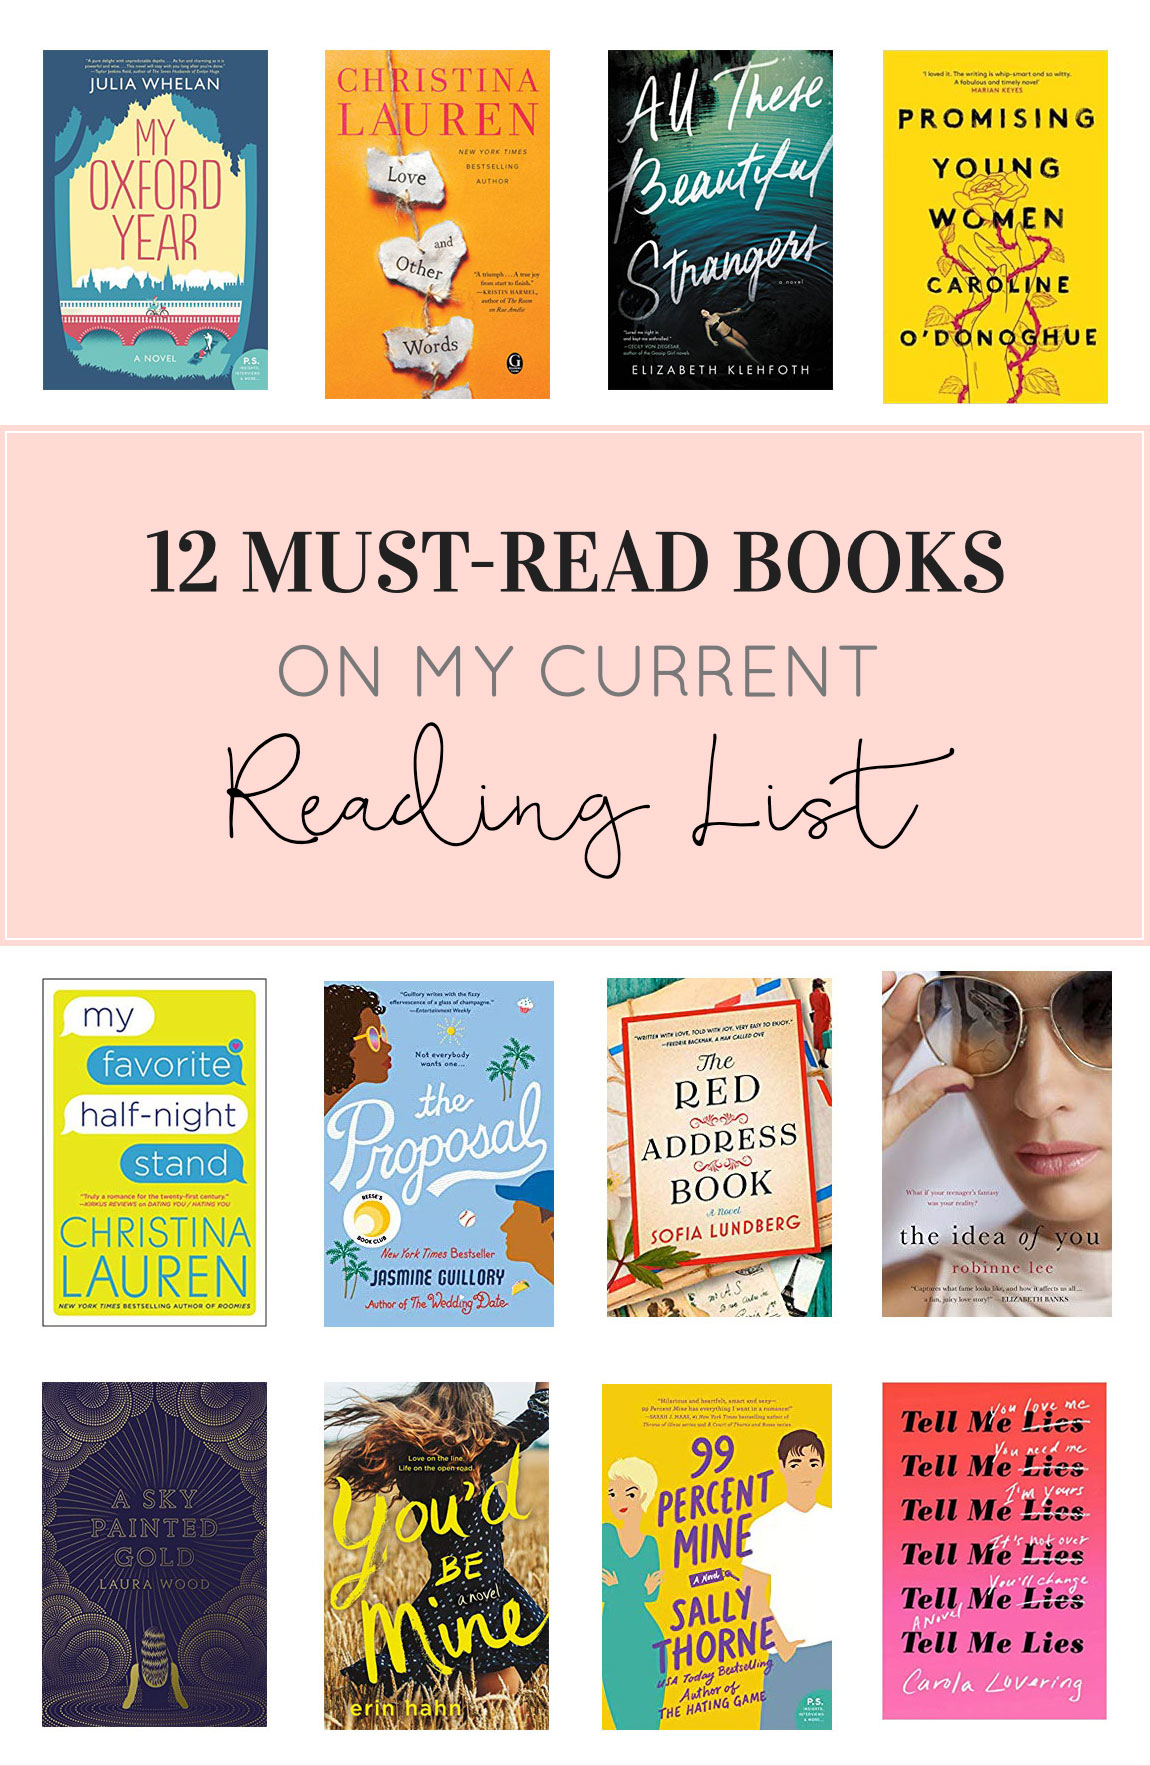 Bestsellers Libros Spring Reading List 12 Must Read Books Glitter Inc